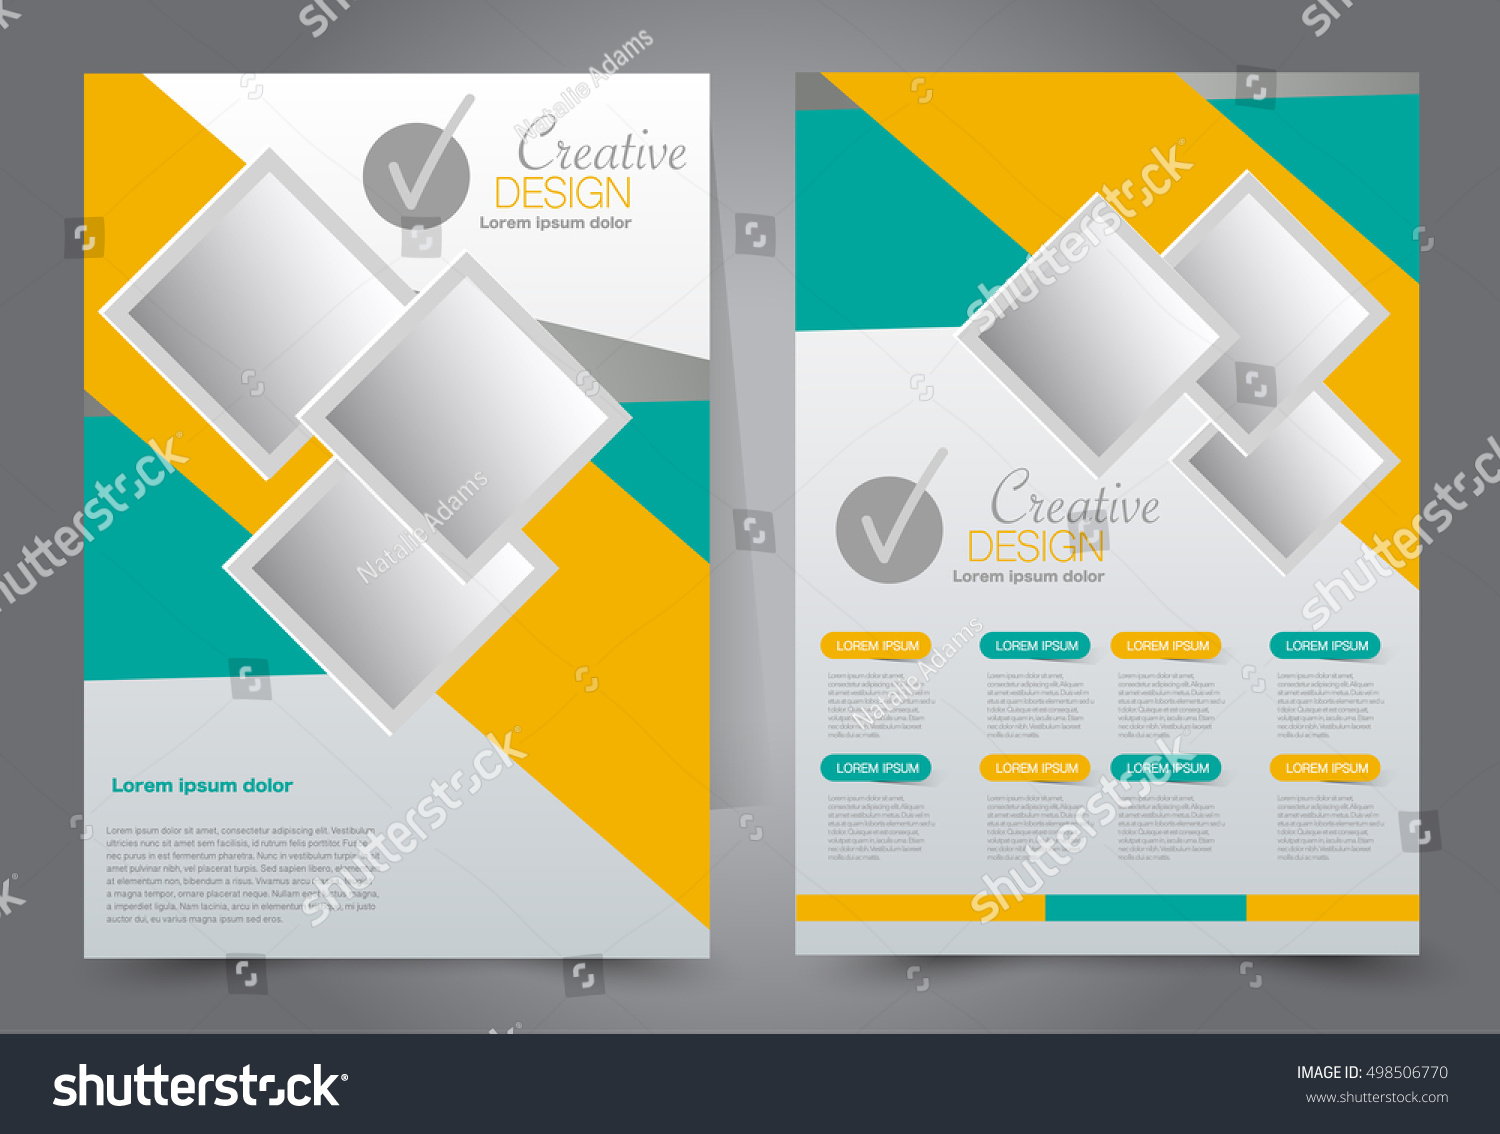 Poster design education - Brochure Template Business Flyer Annual Report Cover Editable A4 Poster For Design